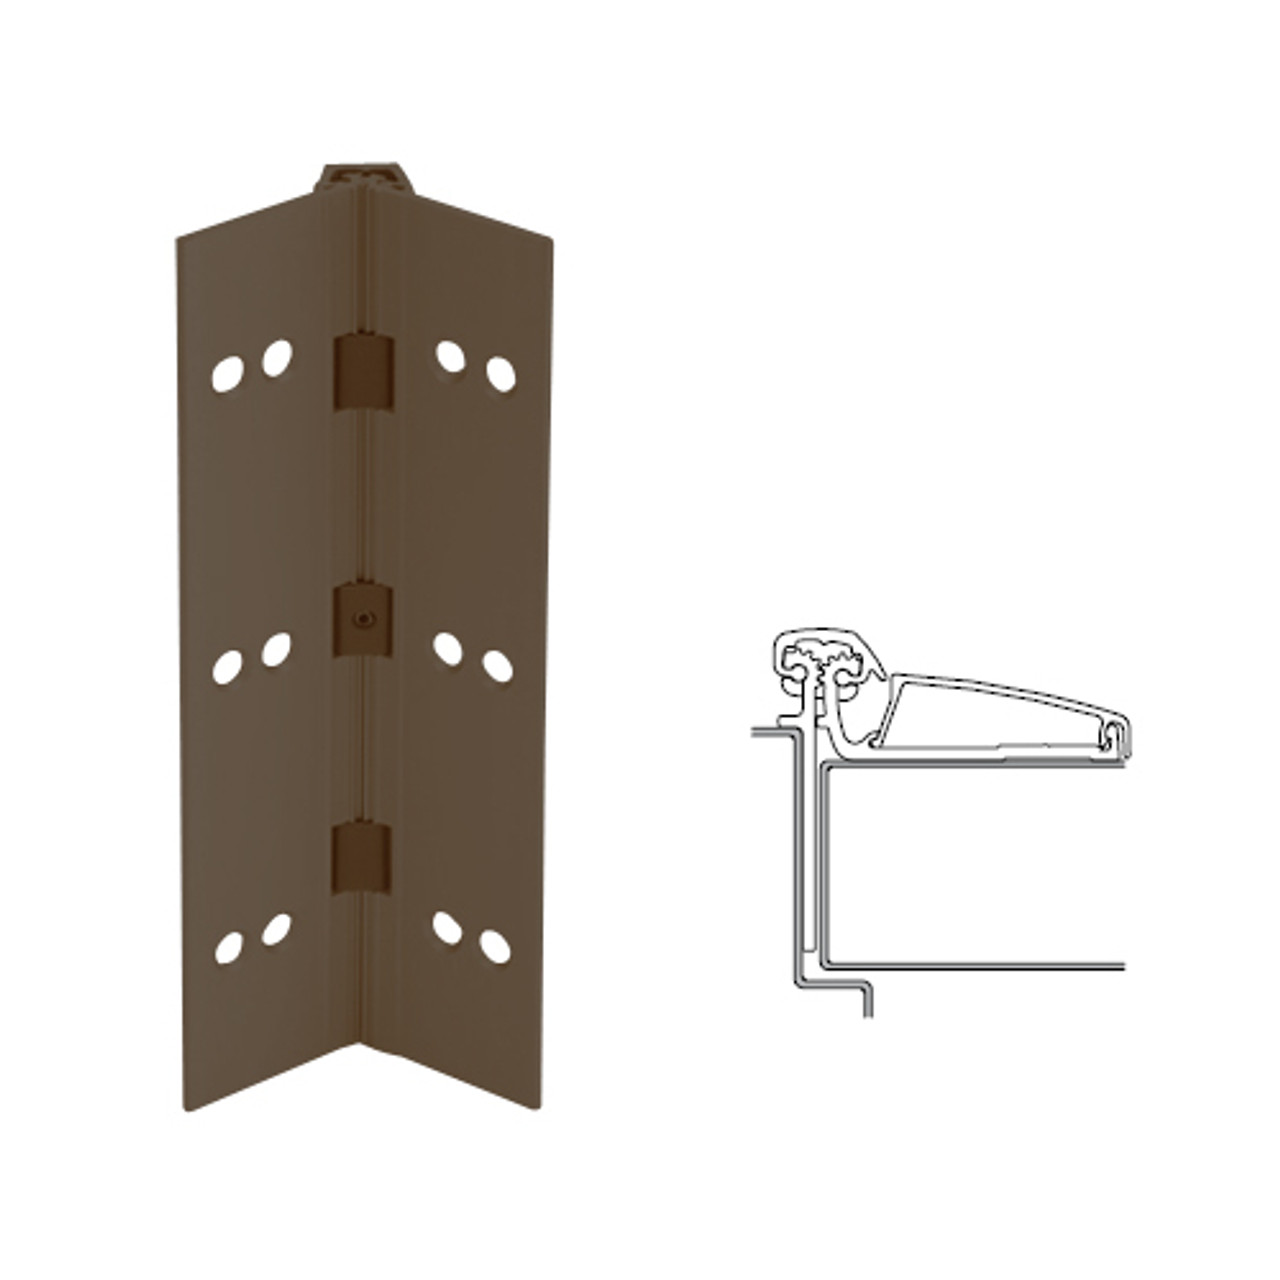 046XY-313AN-120-TF IVES Adjustable Half Surface Continuous Geared Hinges with Thread Forming Screws in Dark Bronze Anodized